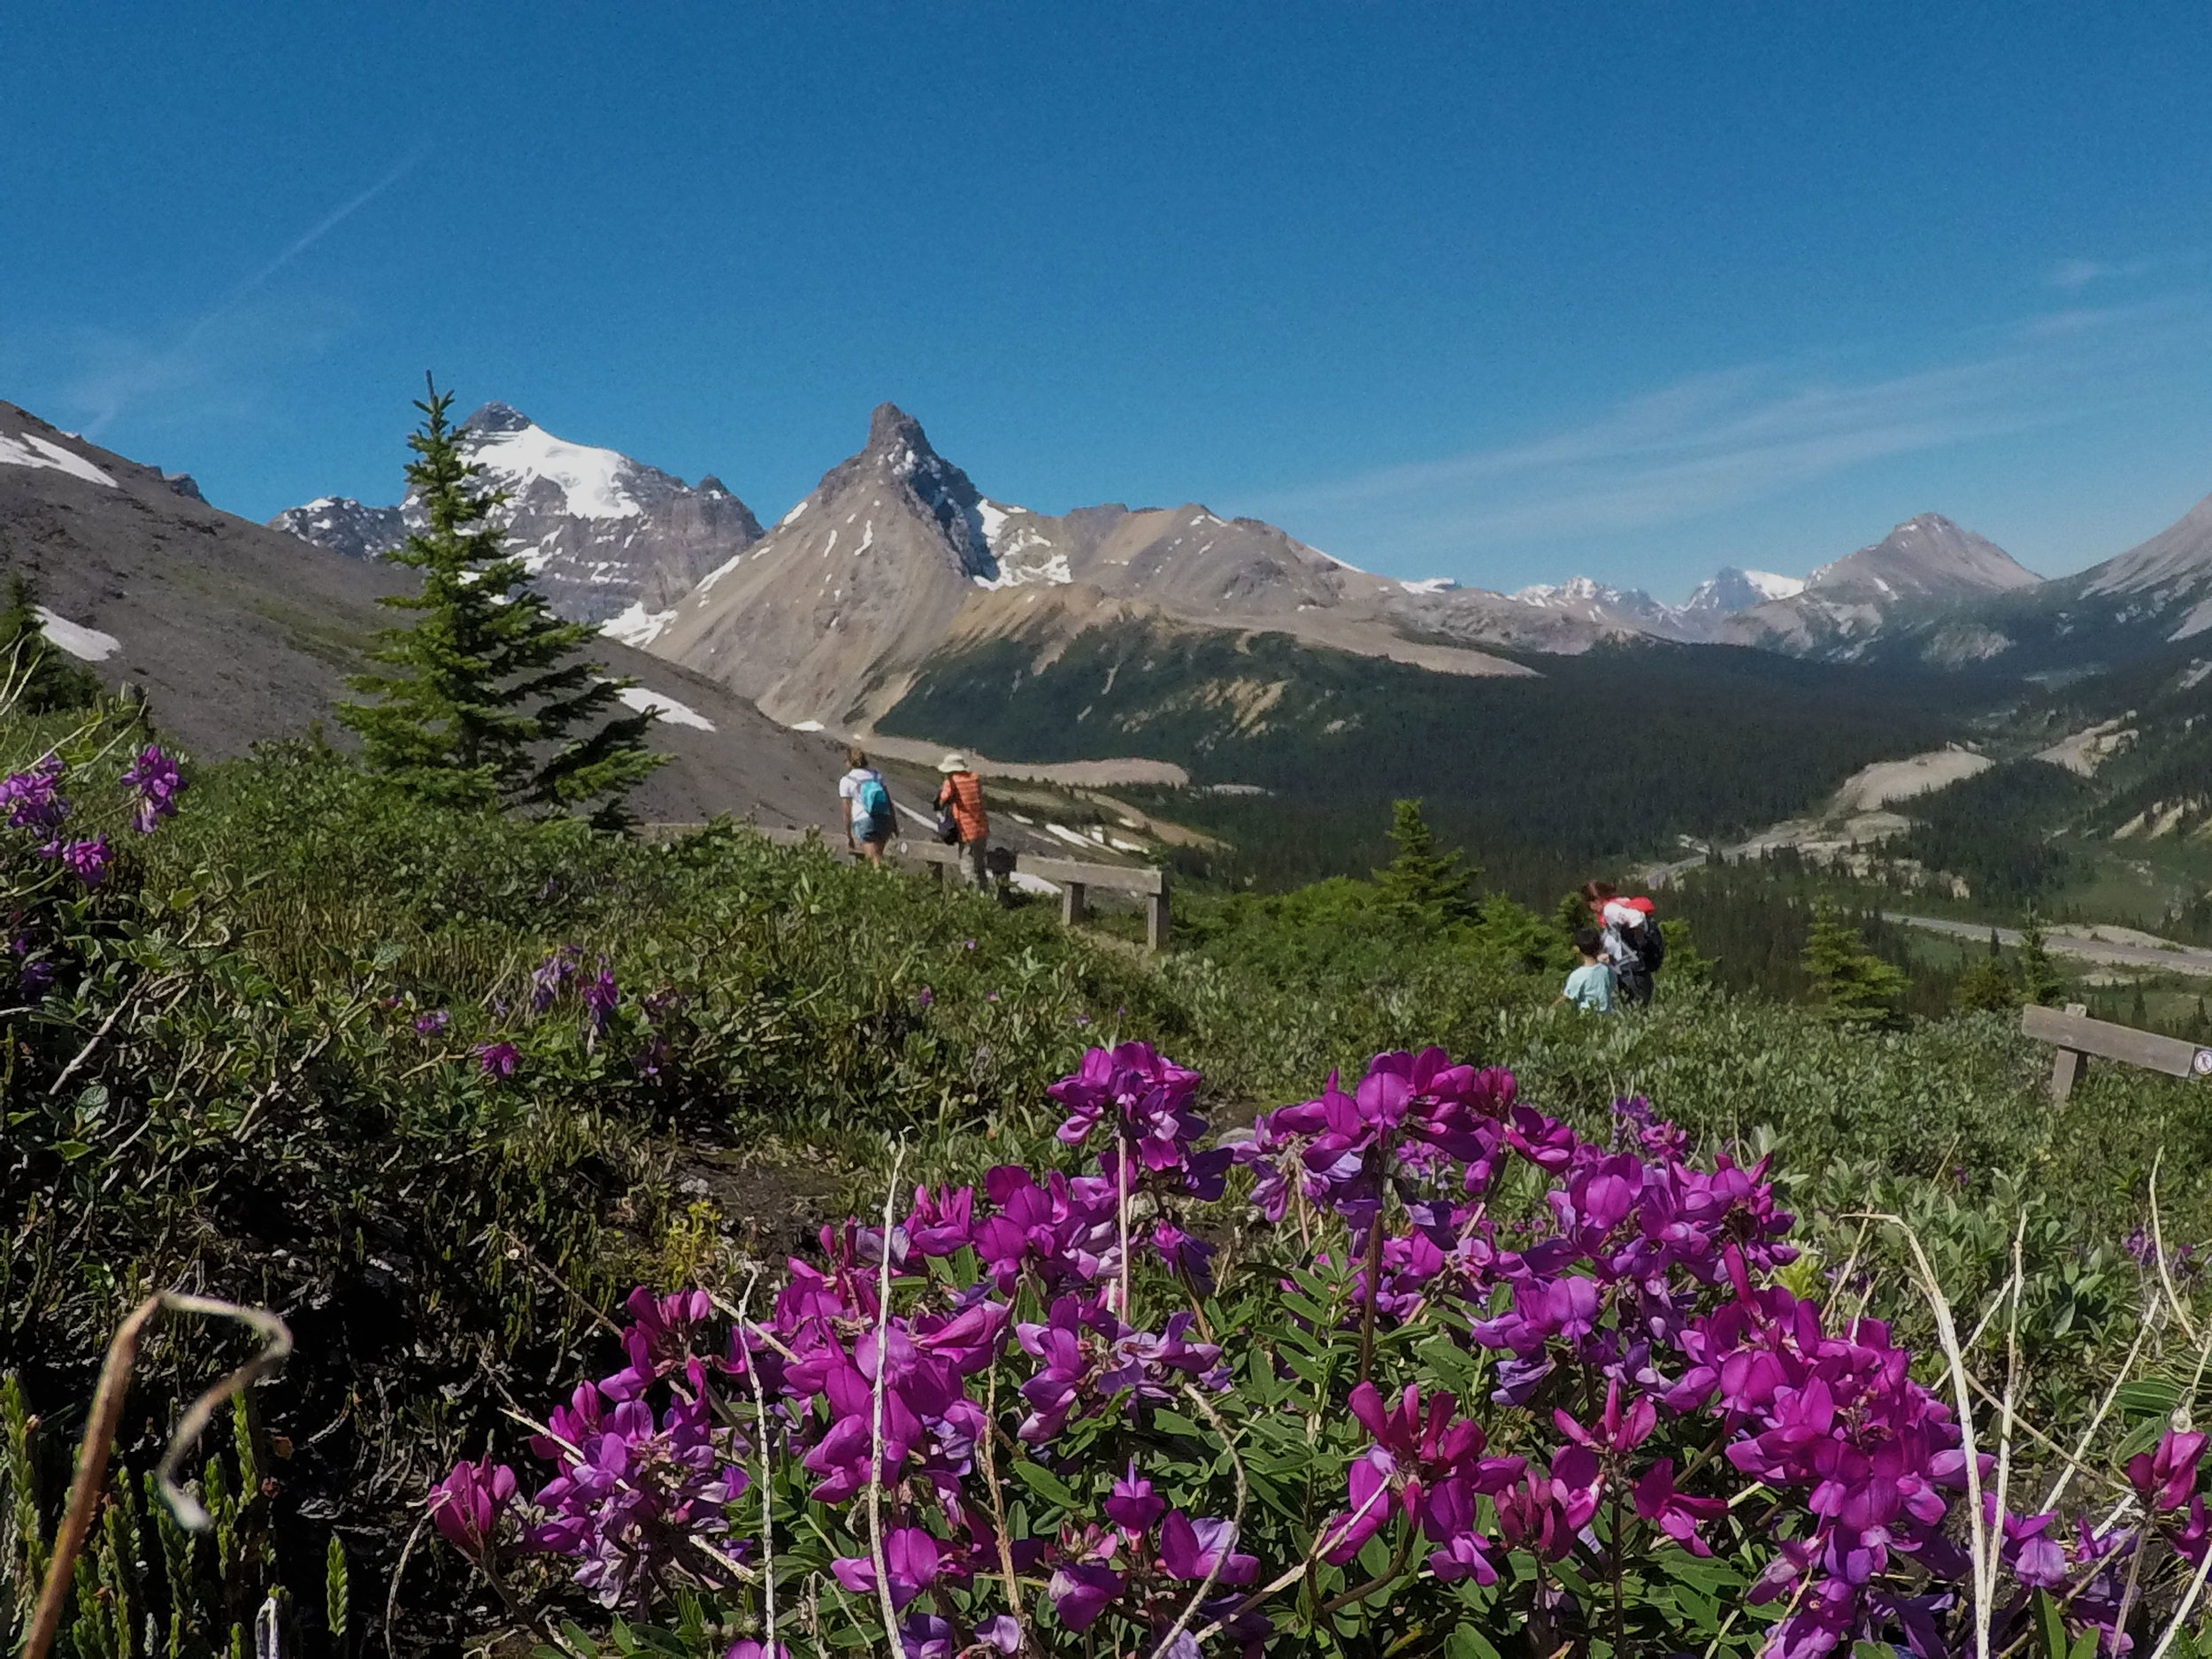 Copy of Hiking off the beaten path in the Rockies on a guided tour.